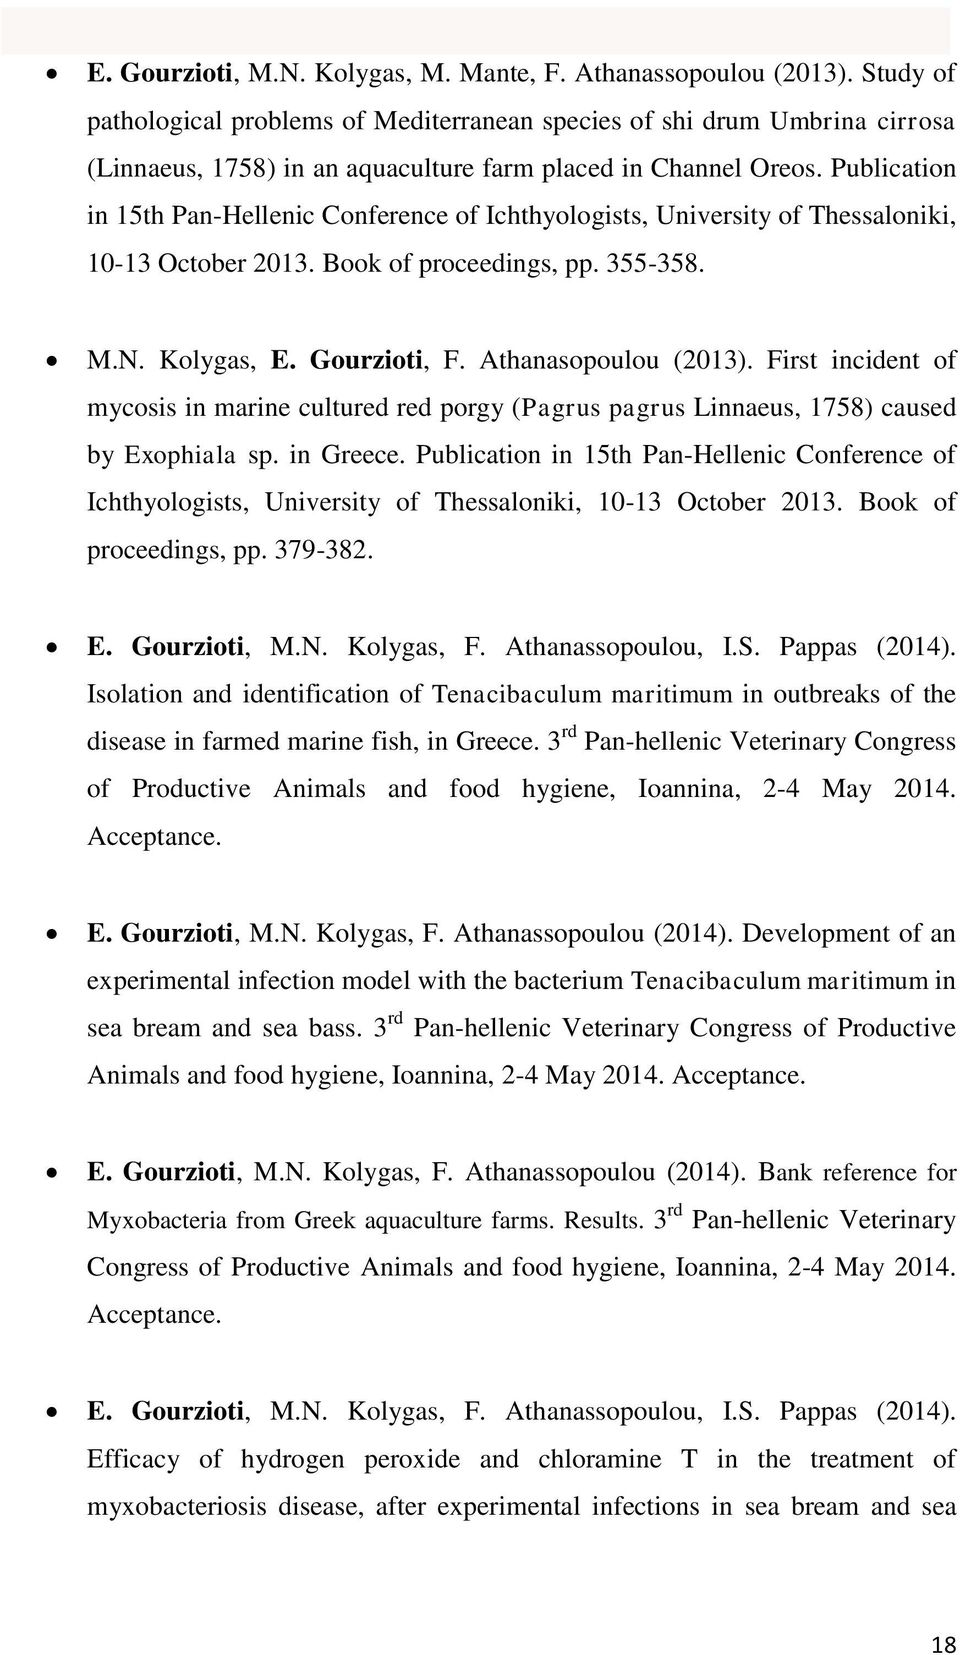 Publication in 15th Pan-Hellenic Conference of Ichthyologists, University of Thessaloniki, 10-13 October 2013. Book of proceedings, pp. 355-358. M.N. Kolygas, E. Gourzioti, F. Athanasopoulou (2013).